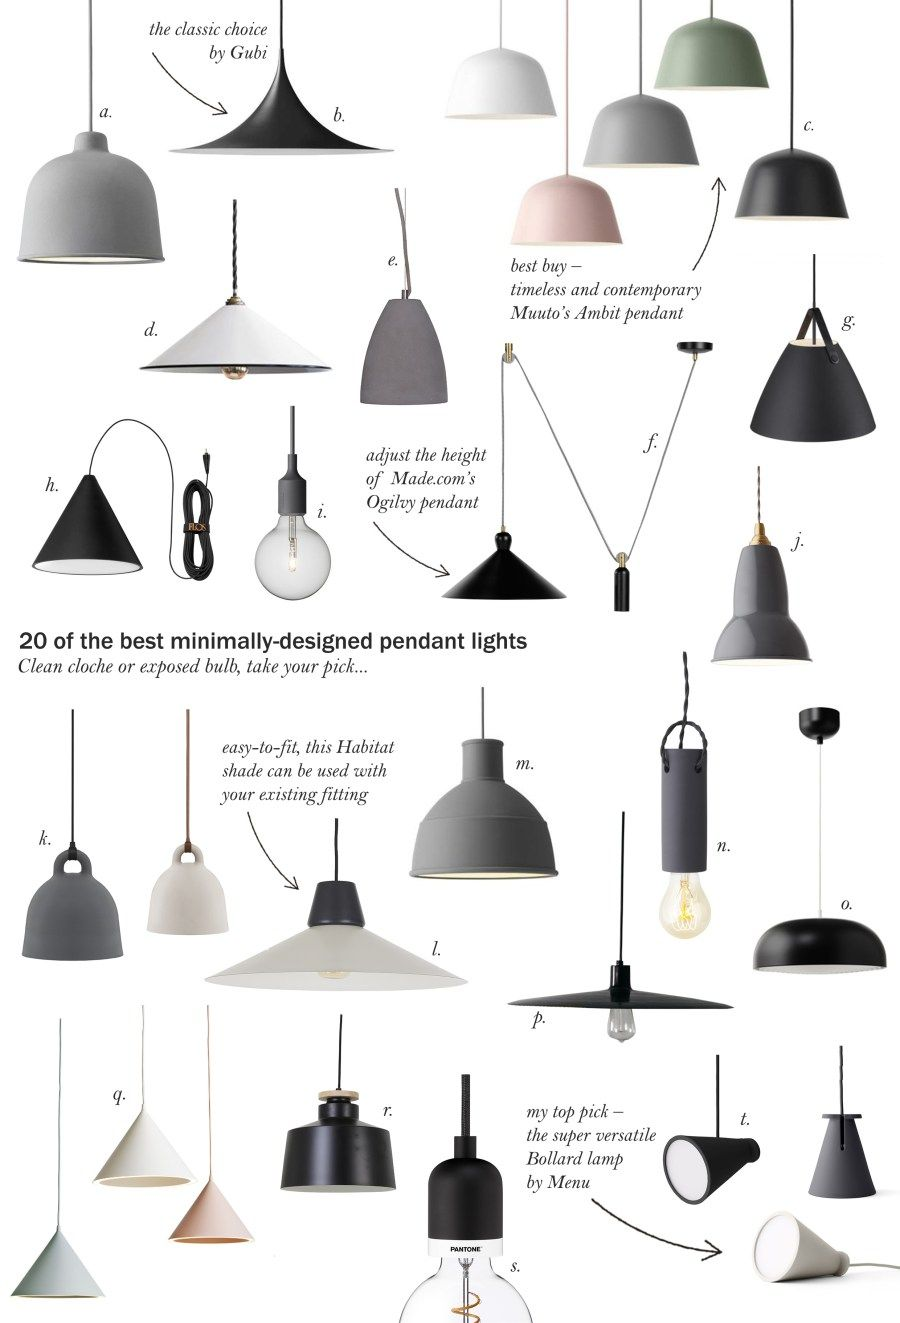 20 of the best minimal pendant lights #pendantlighting